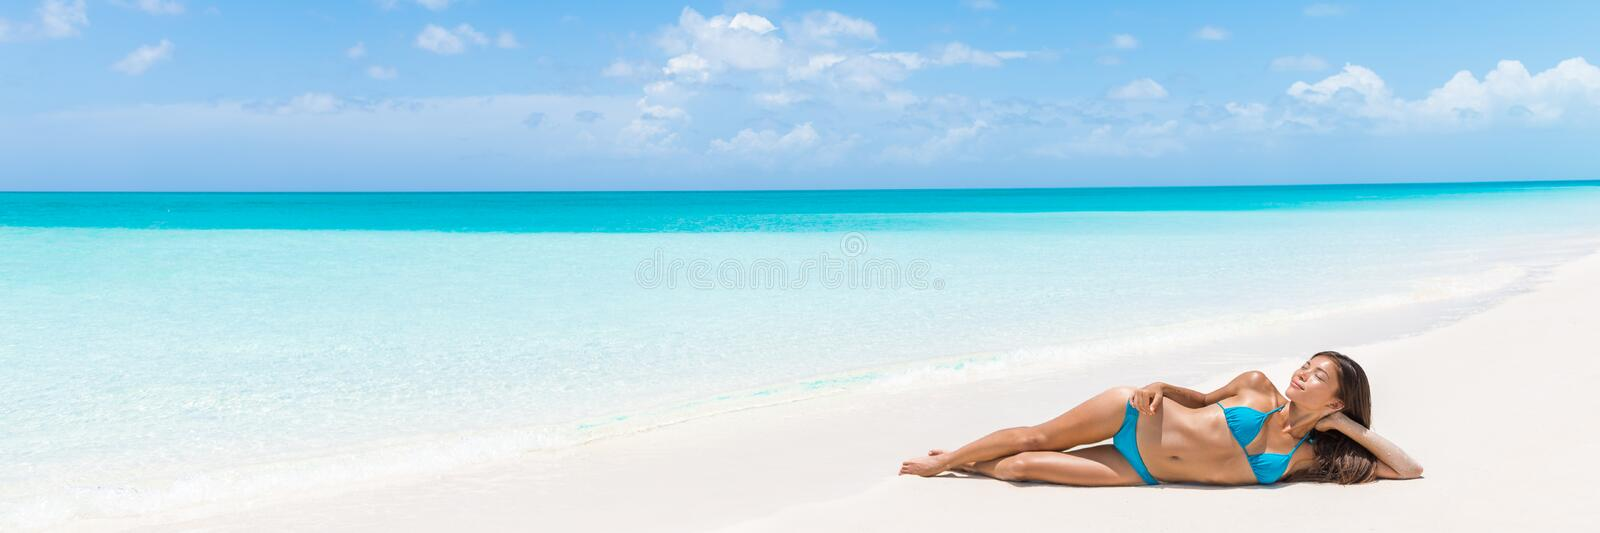 Paradise tropical beach vacation woman relaxing royalty free stock photo